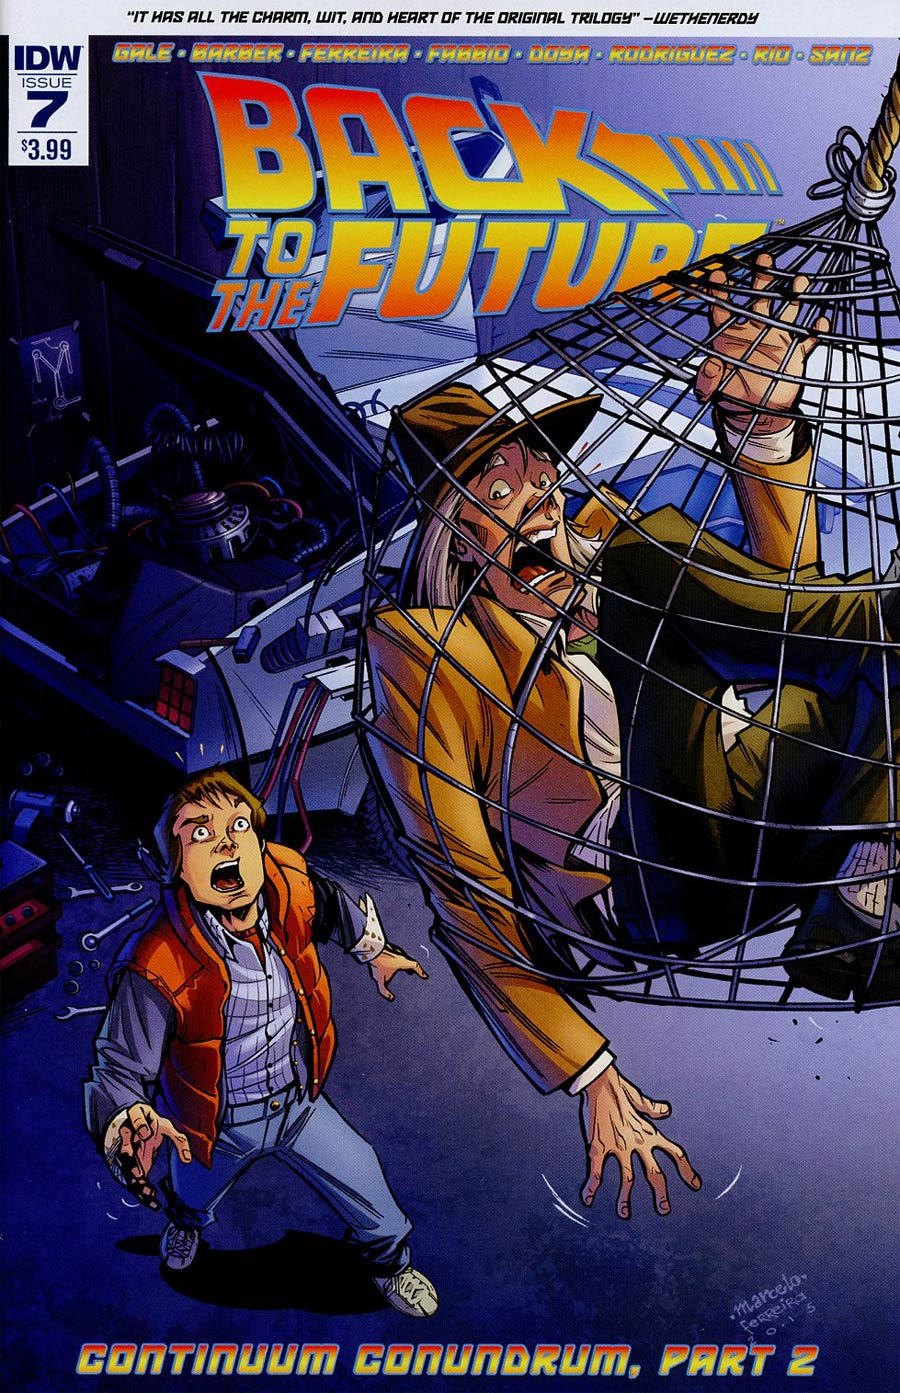 Back To The Future Vol 2 #7 Cover A Regular Marcelo Ferreira Cover